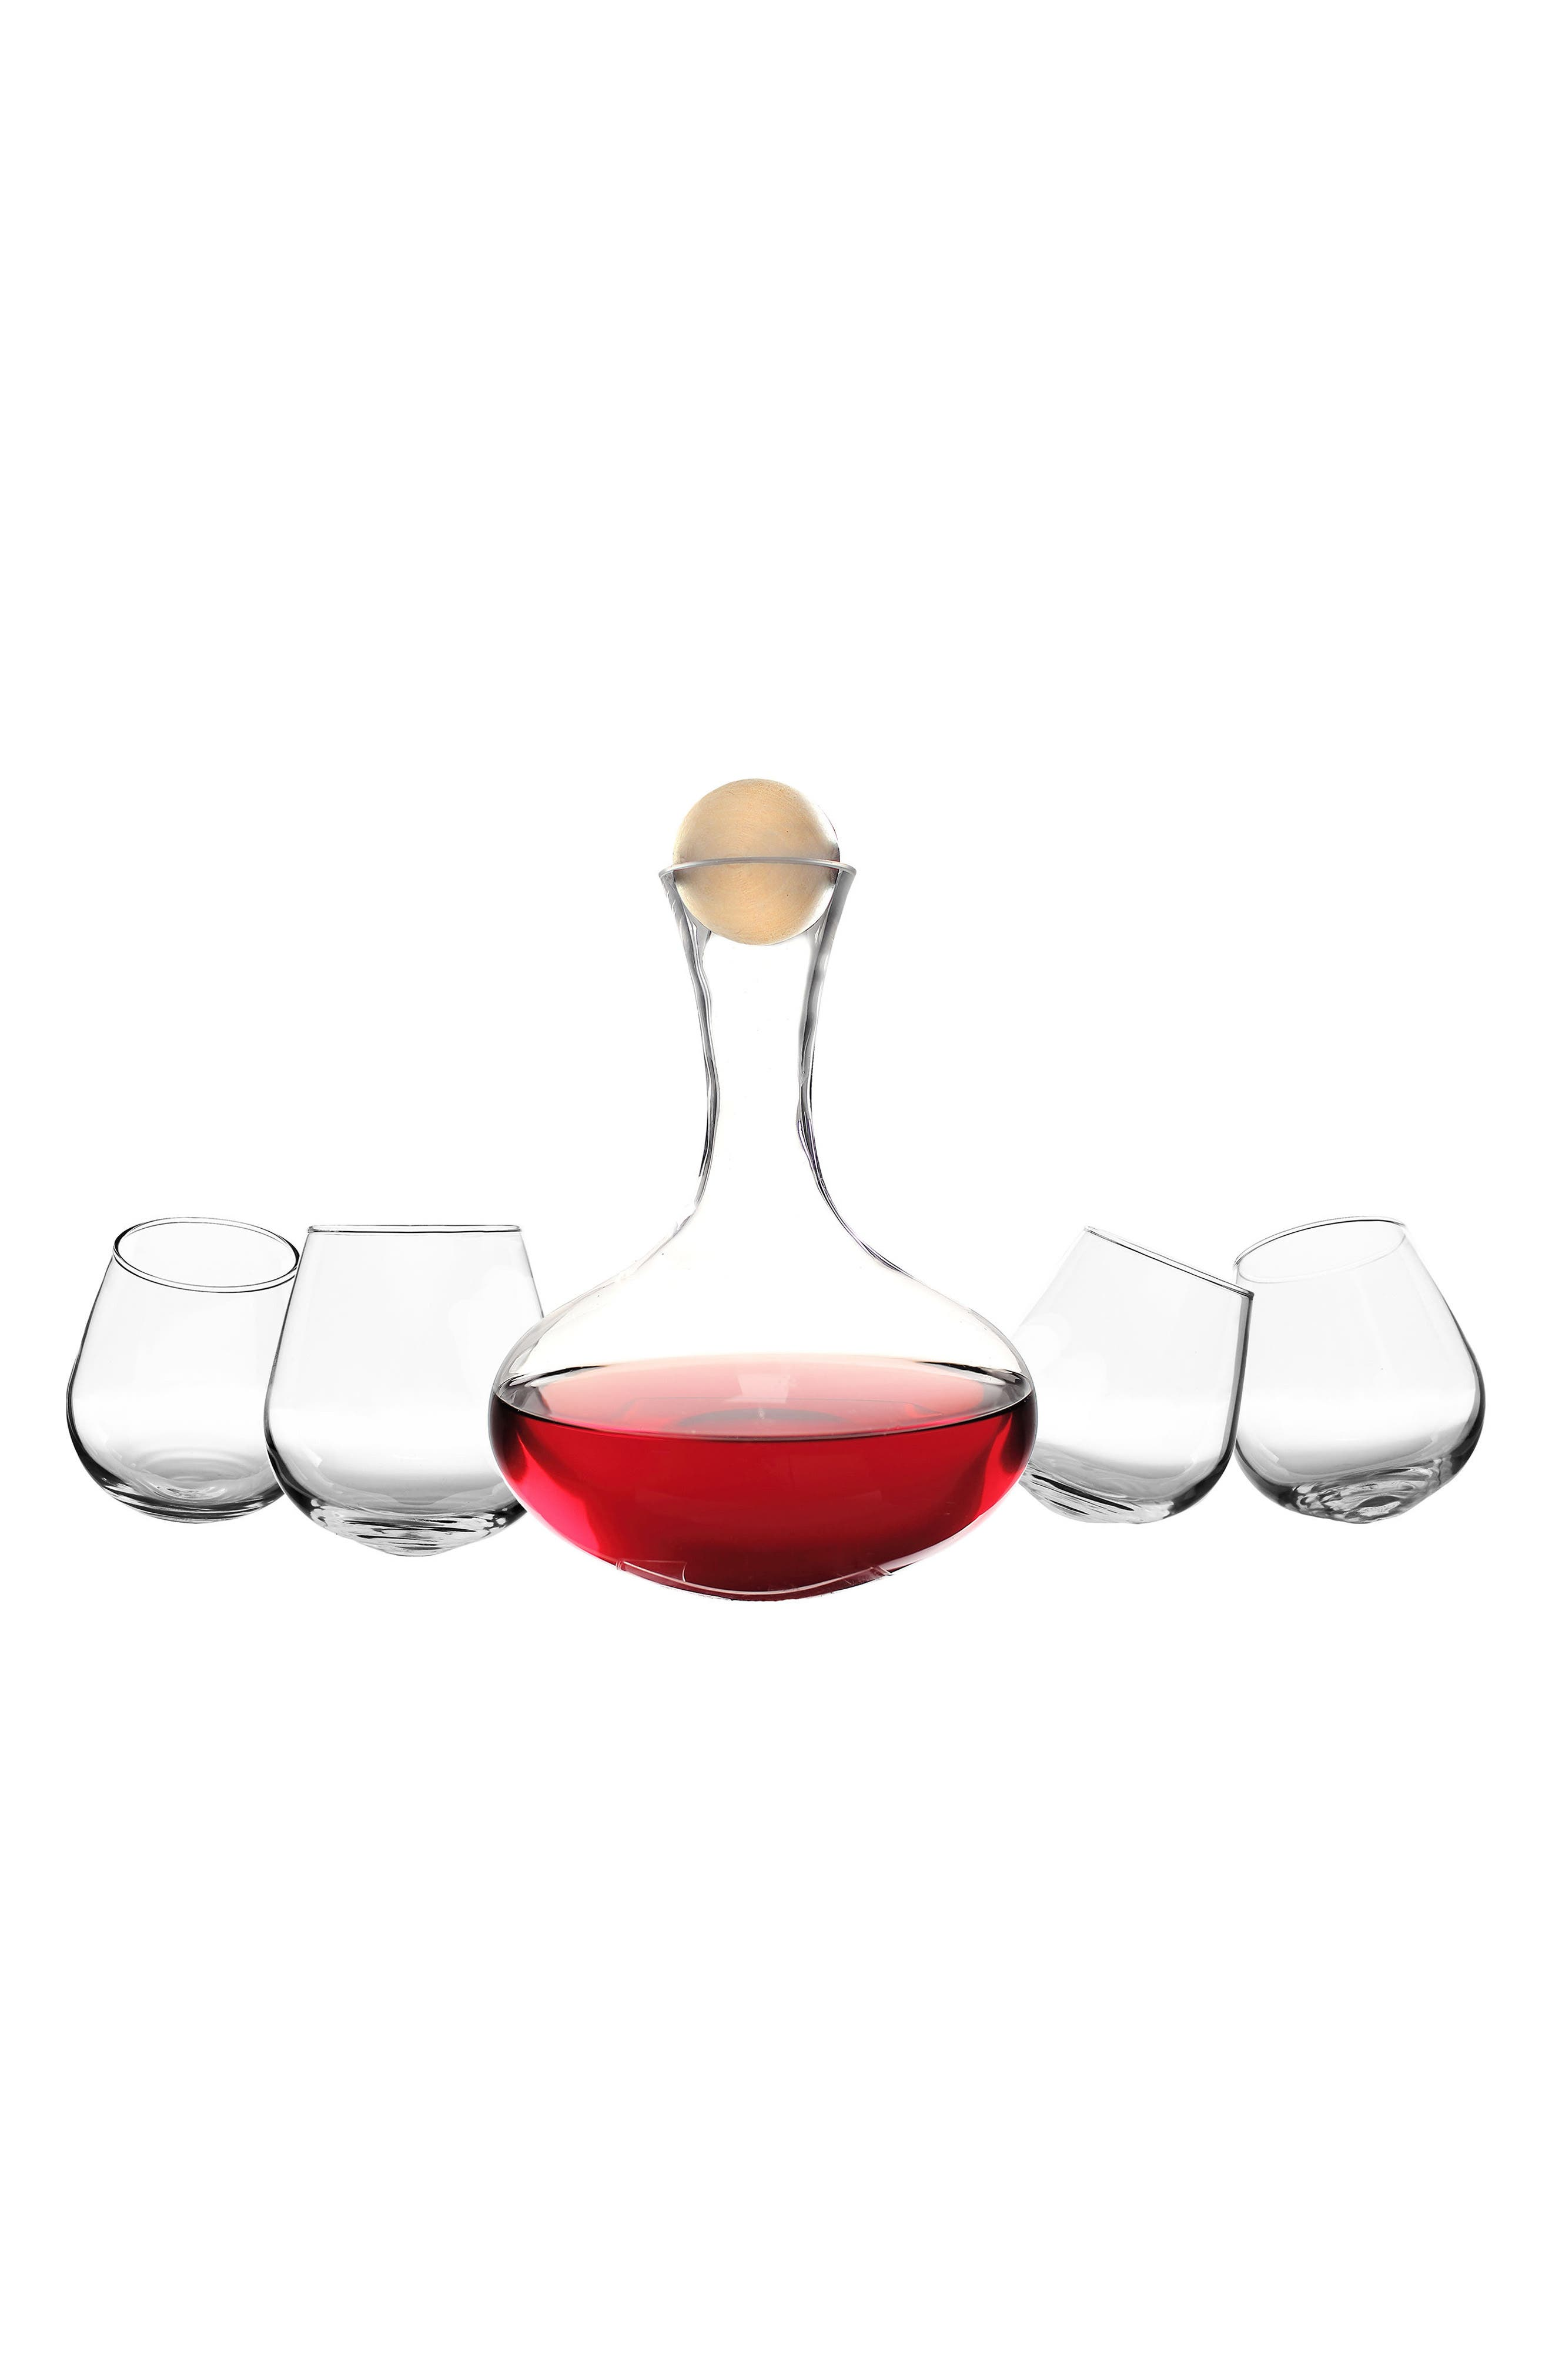 'Tipsy' Monogram Wine Decanter & Stemless Glasses,                             Main thumbnail 1, color,                             100